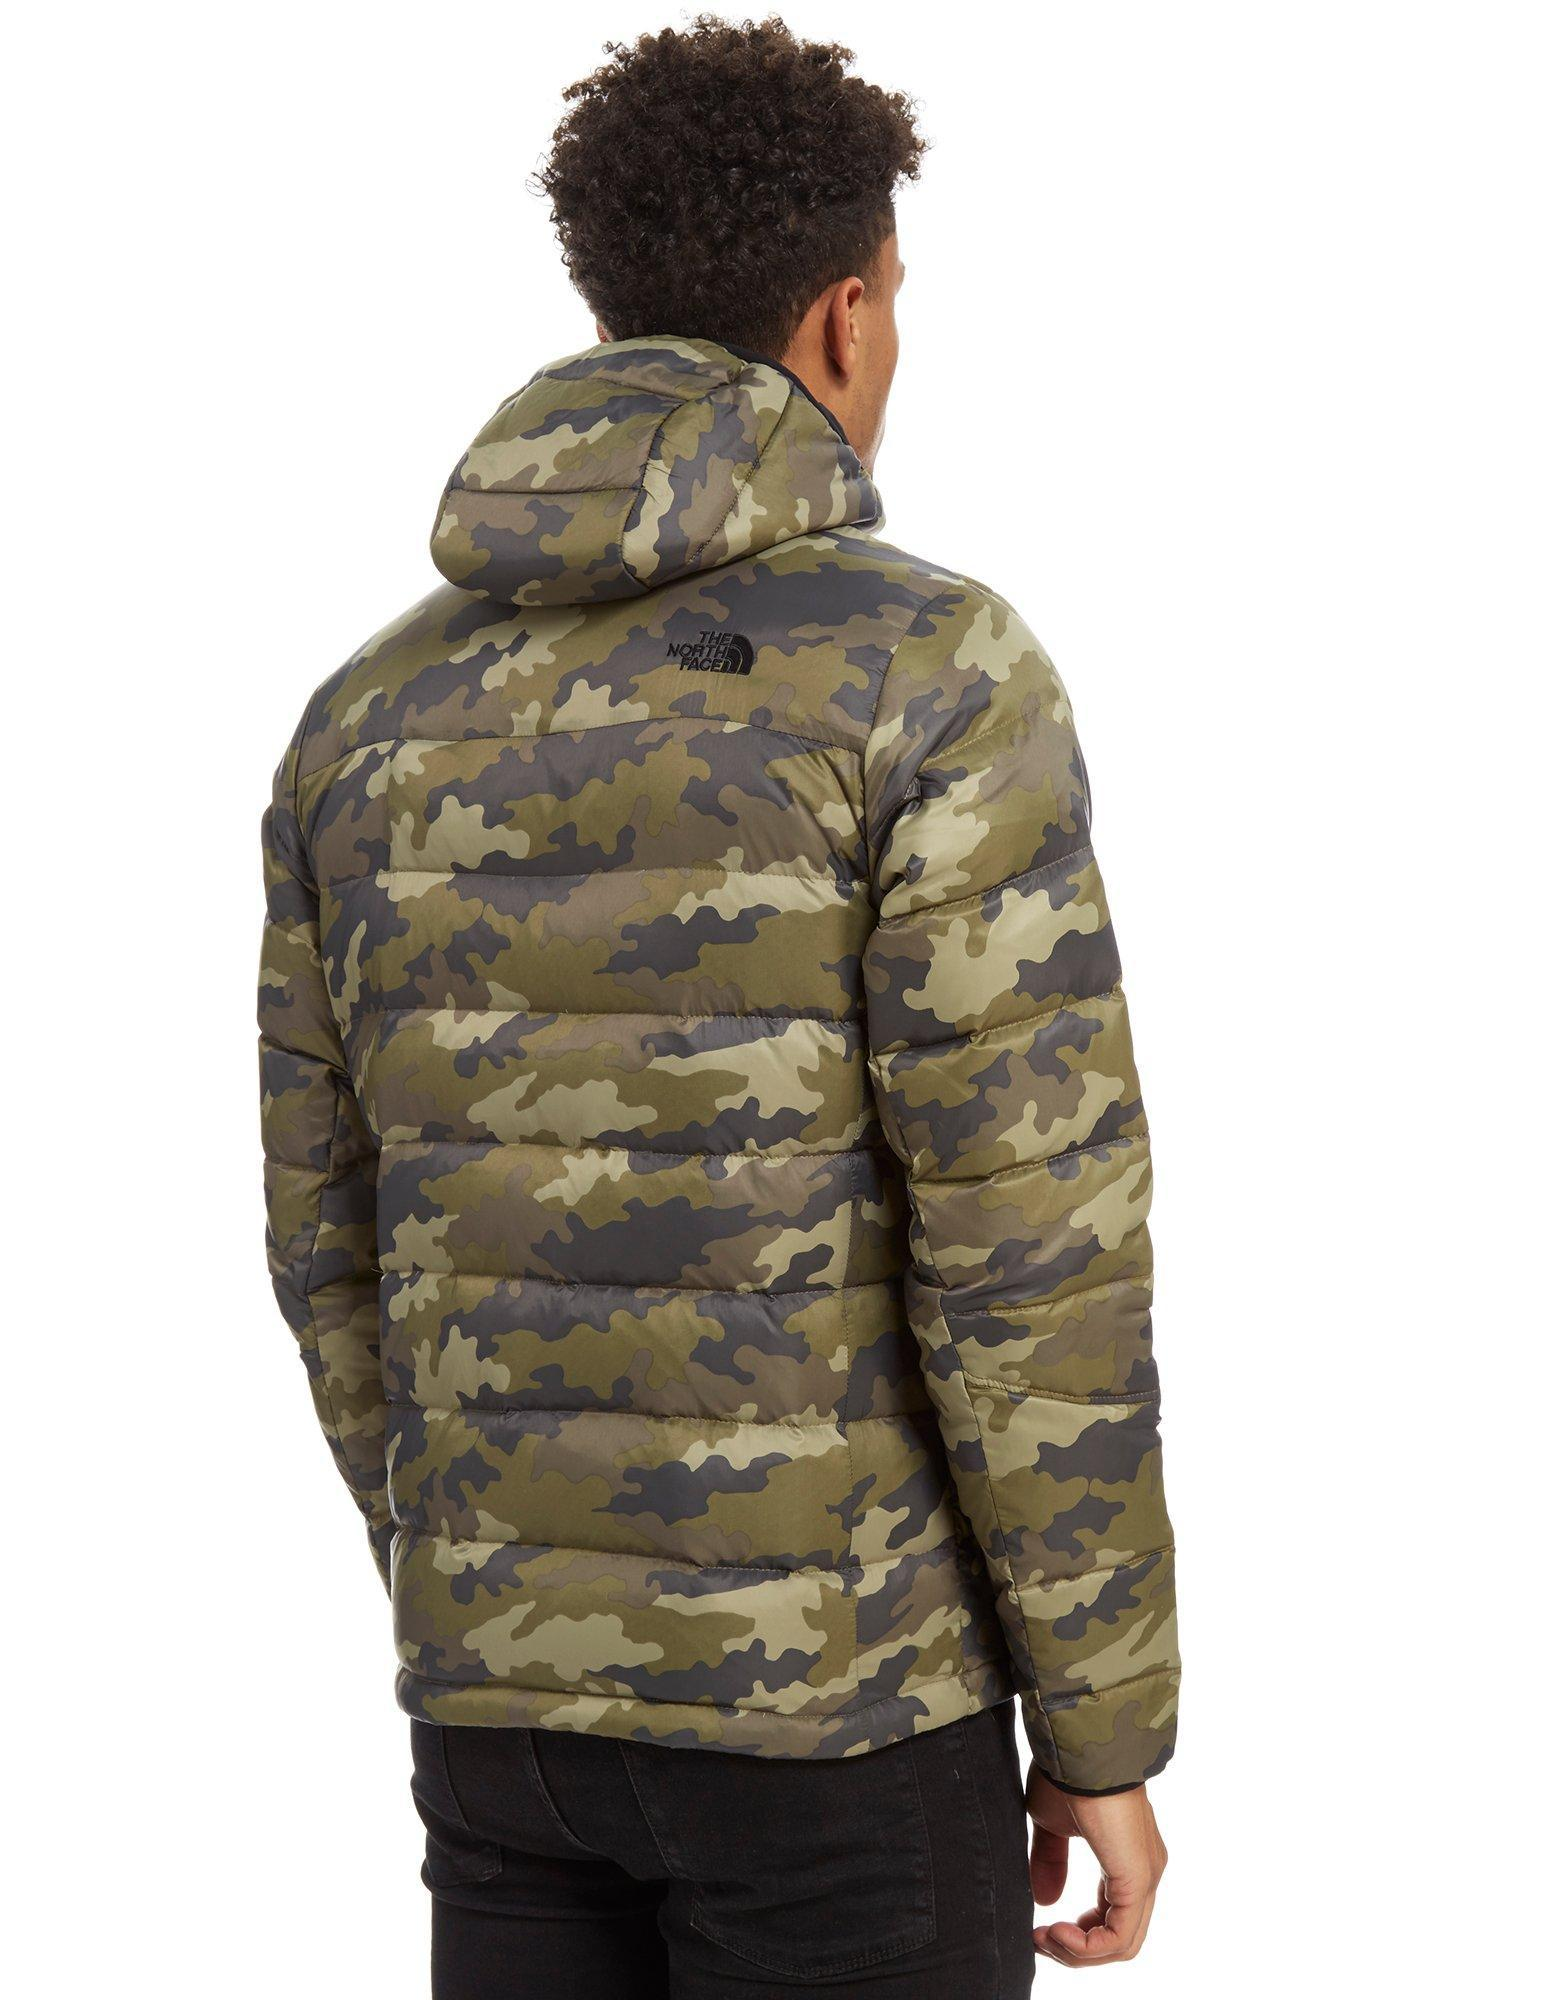 1aa66a1b7 new arrivals the north face vostok down insulated jacket crossword ...